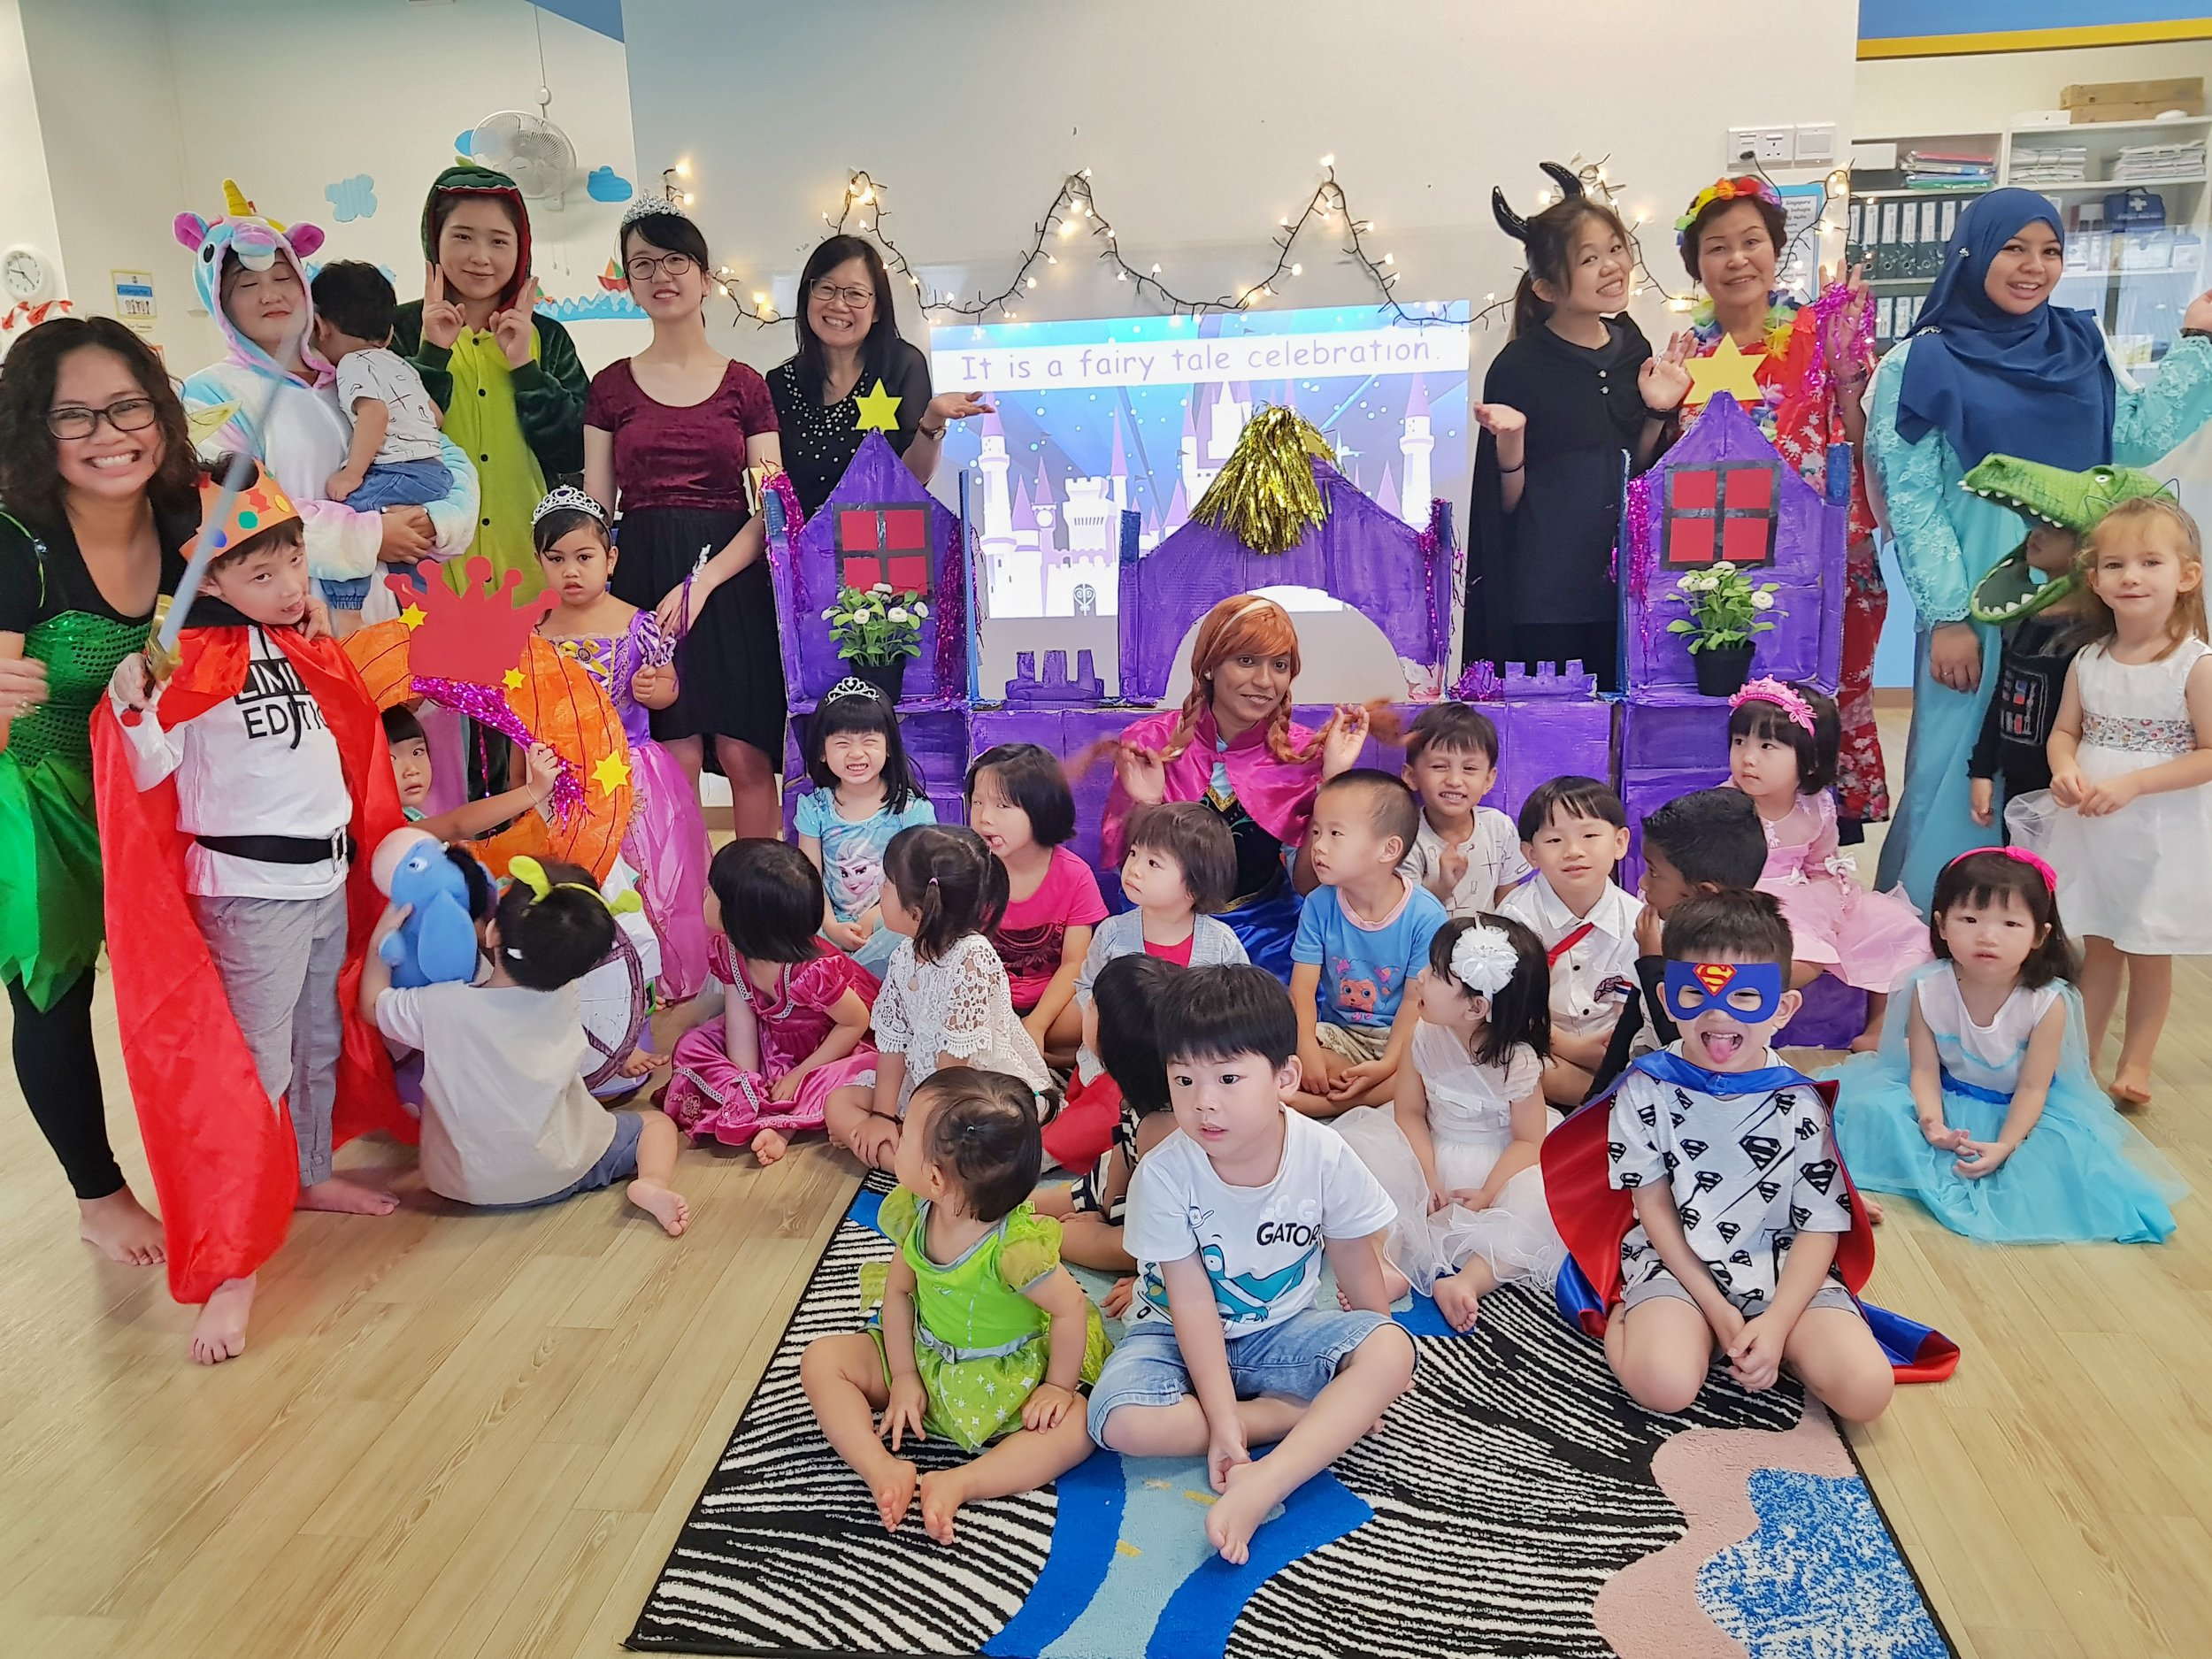 Alora Fairy Tale Day 2 (12 March 2018).jpeg